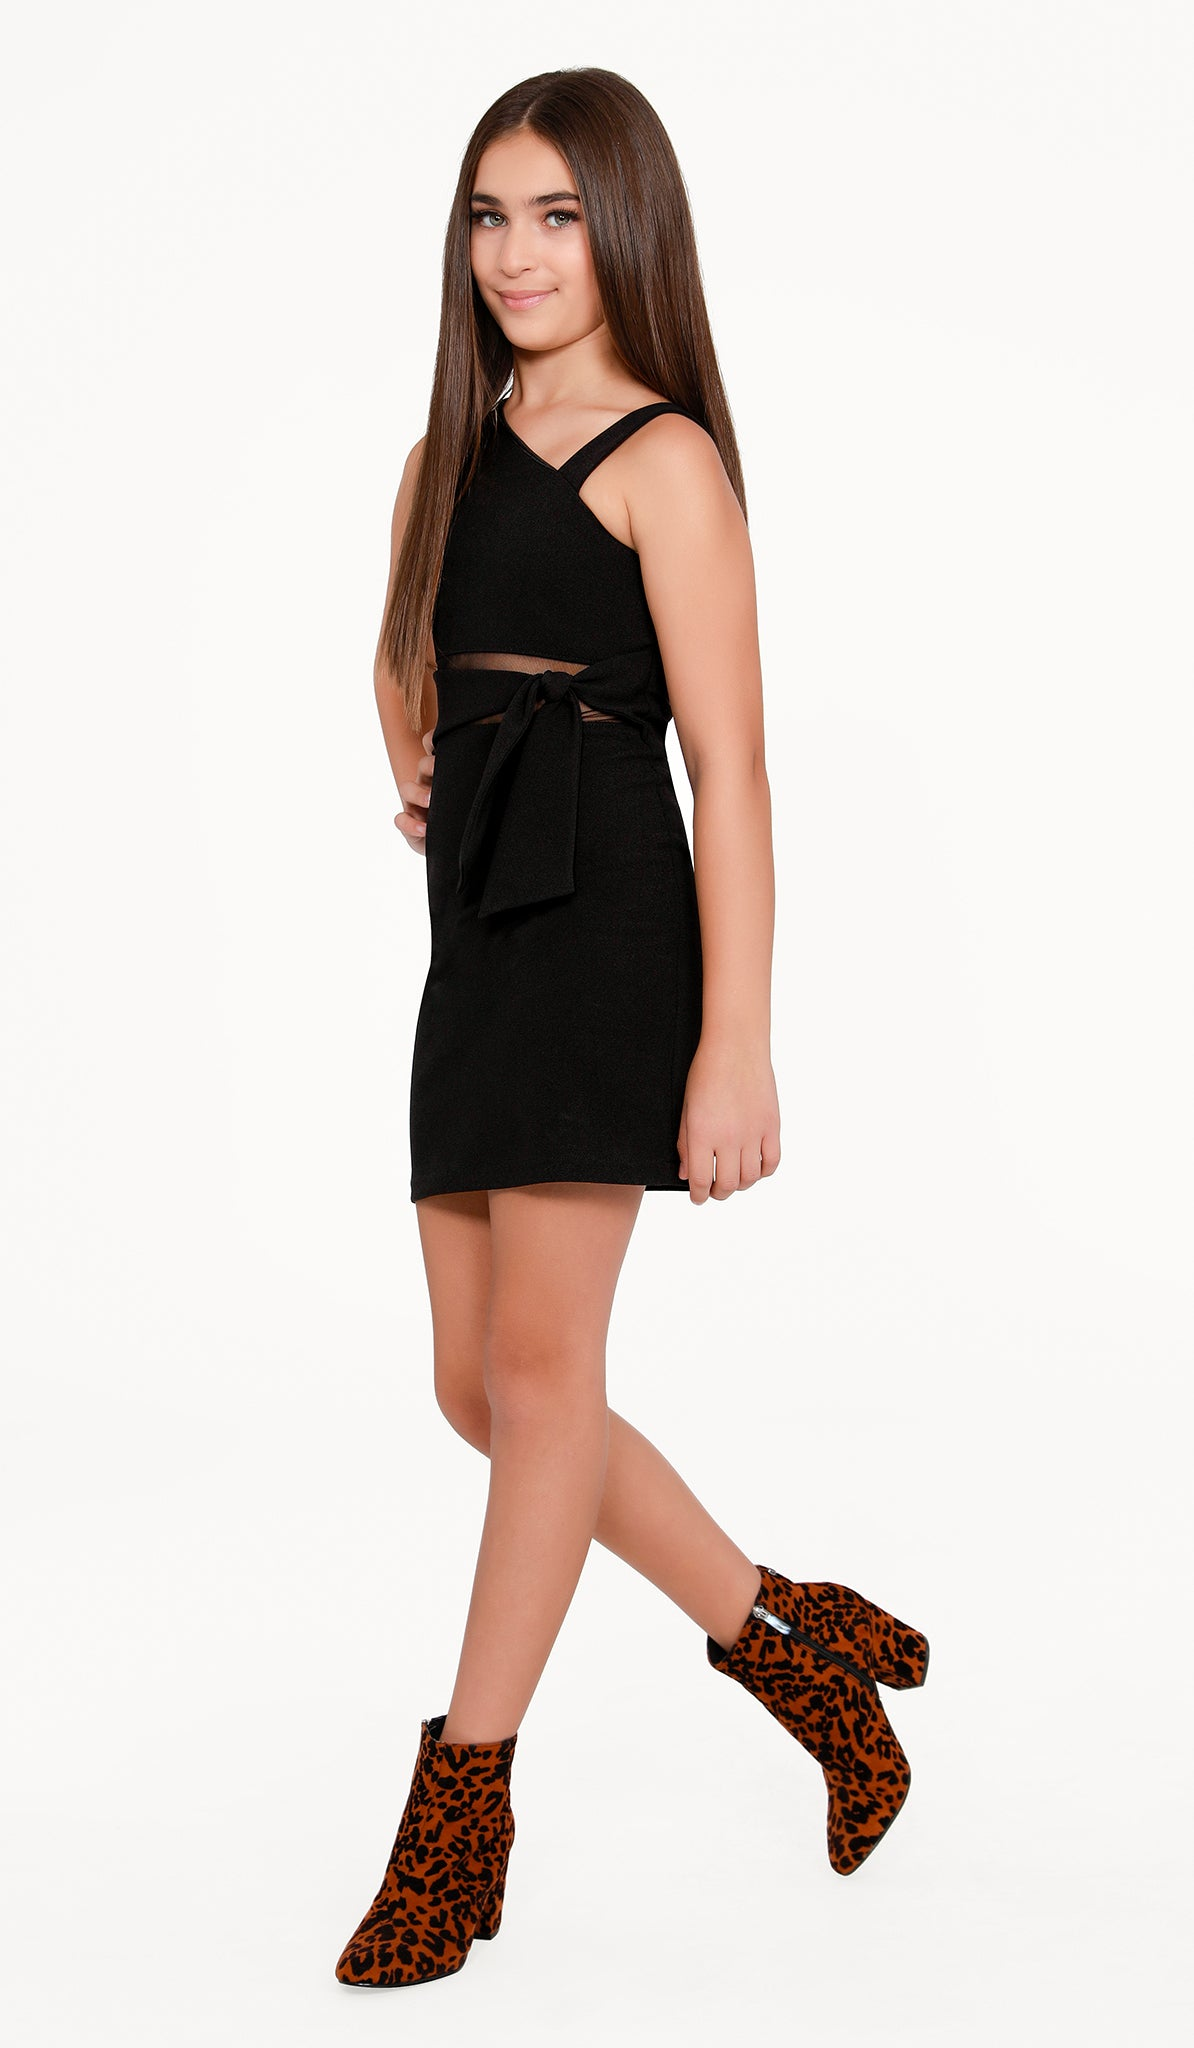 THE DEVIN DRESS - Sallymiller.com - [variant title] - | Event & Party Dresses for Tween Girls & Juniors | Weddings Dresses, Bat Mitzvah Dresses, Sweet Sixteen Dresses, Graduation Dresses, Birthday Party Dresses, Bar Mitzvah Dresses, Cotillion Dresses